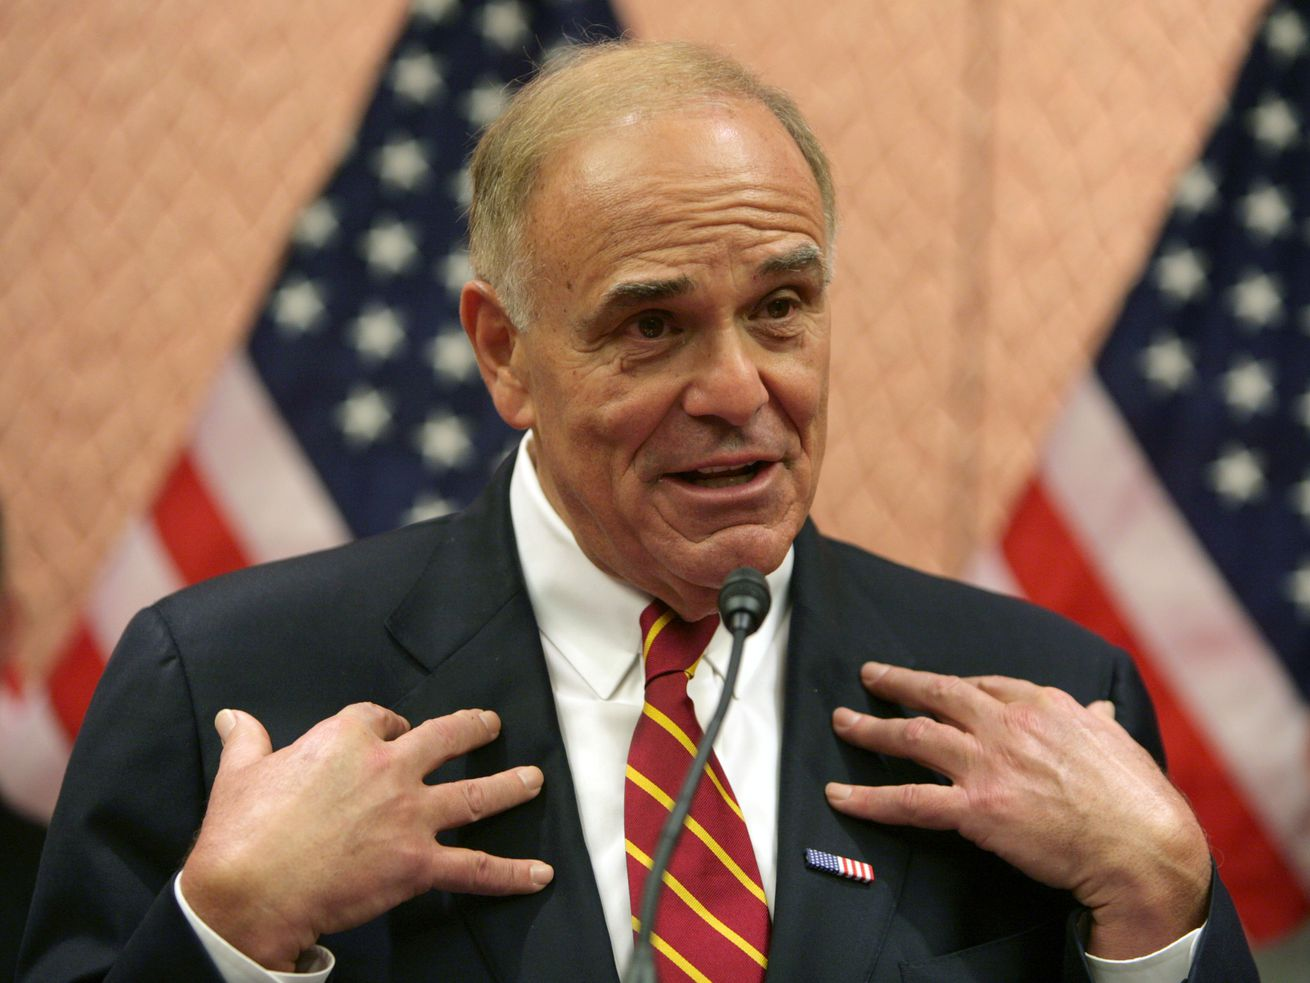 Ed Rendell, former governor of Pennsylvania.